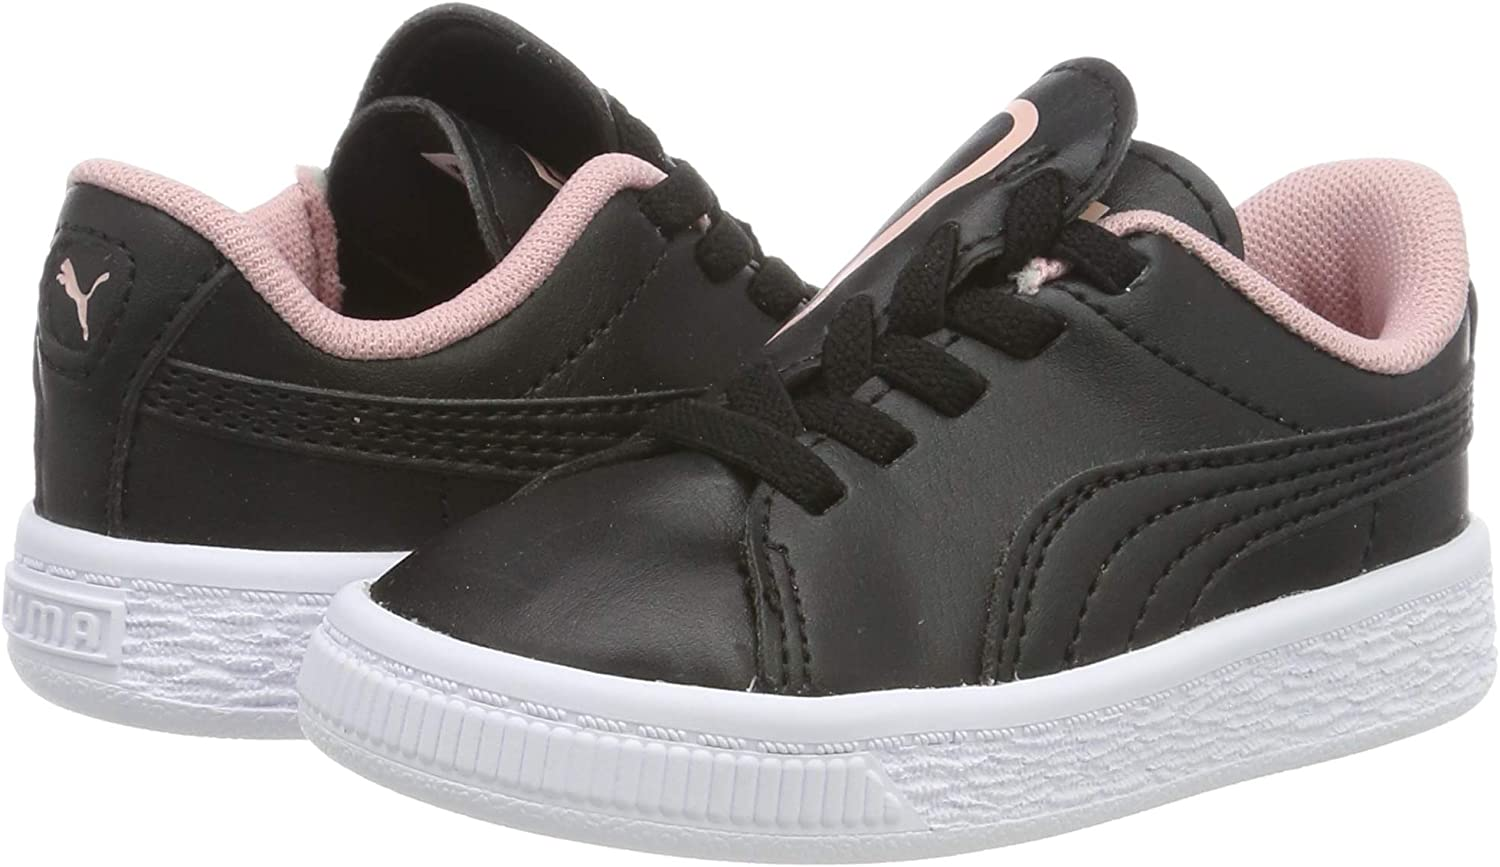 PUMA Basket Crush AC Inf, Fille: : Chaussures et Sacs